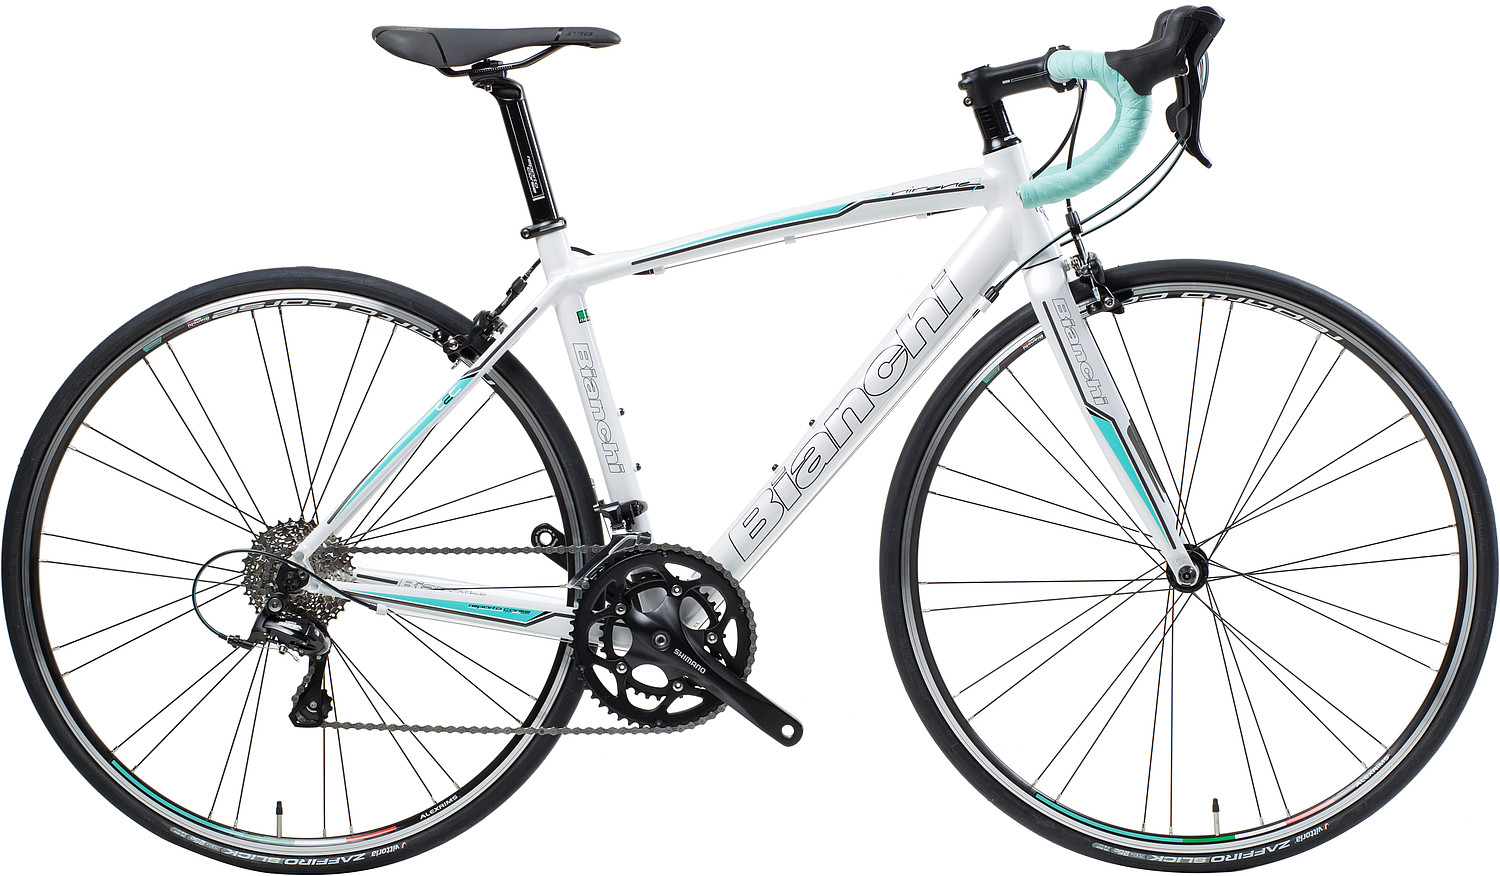 Bianchi Via Nirone Dama Sora - Sale Price $899.99 (Regular Price $969.99)Triple-butted hydroformed aluminum frame, carbon fork, Shimano Sora 3 x 9 speed shifting, Reparto Corse caliper brakes.Available Sizes: 44cm, 46cm, 50cm